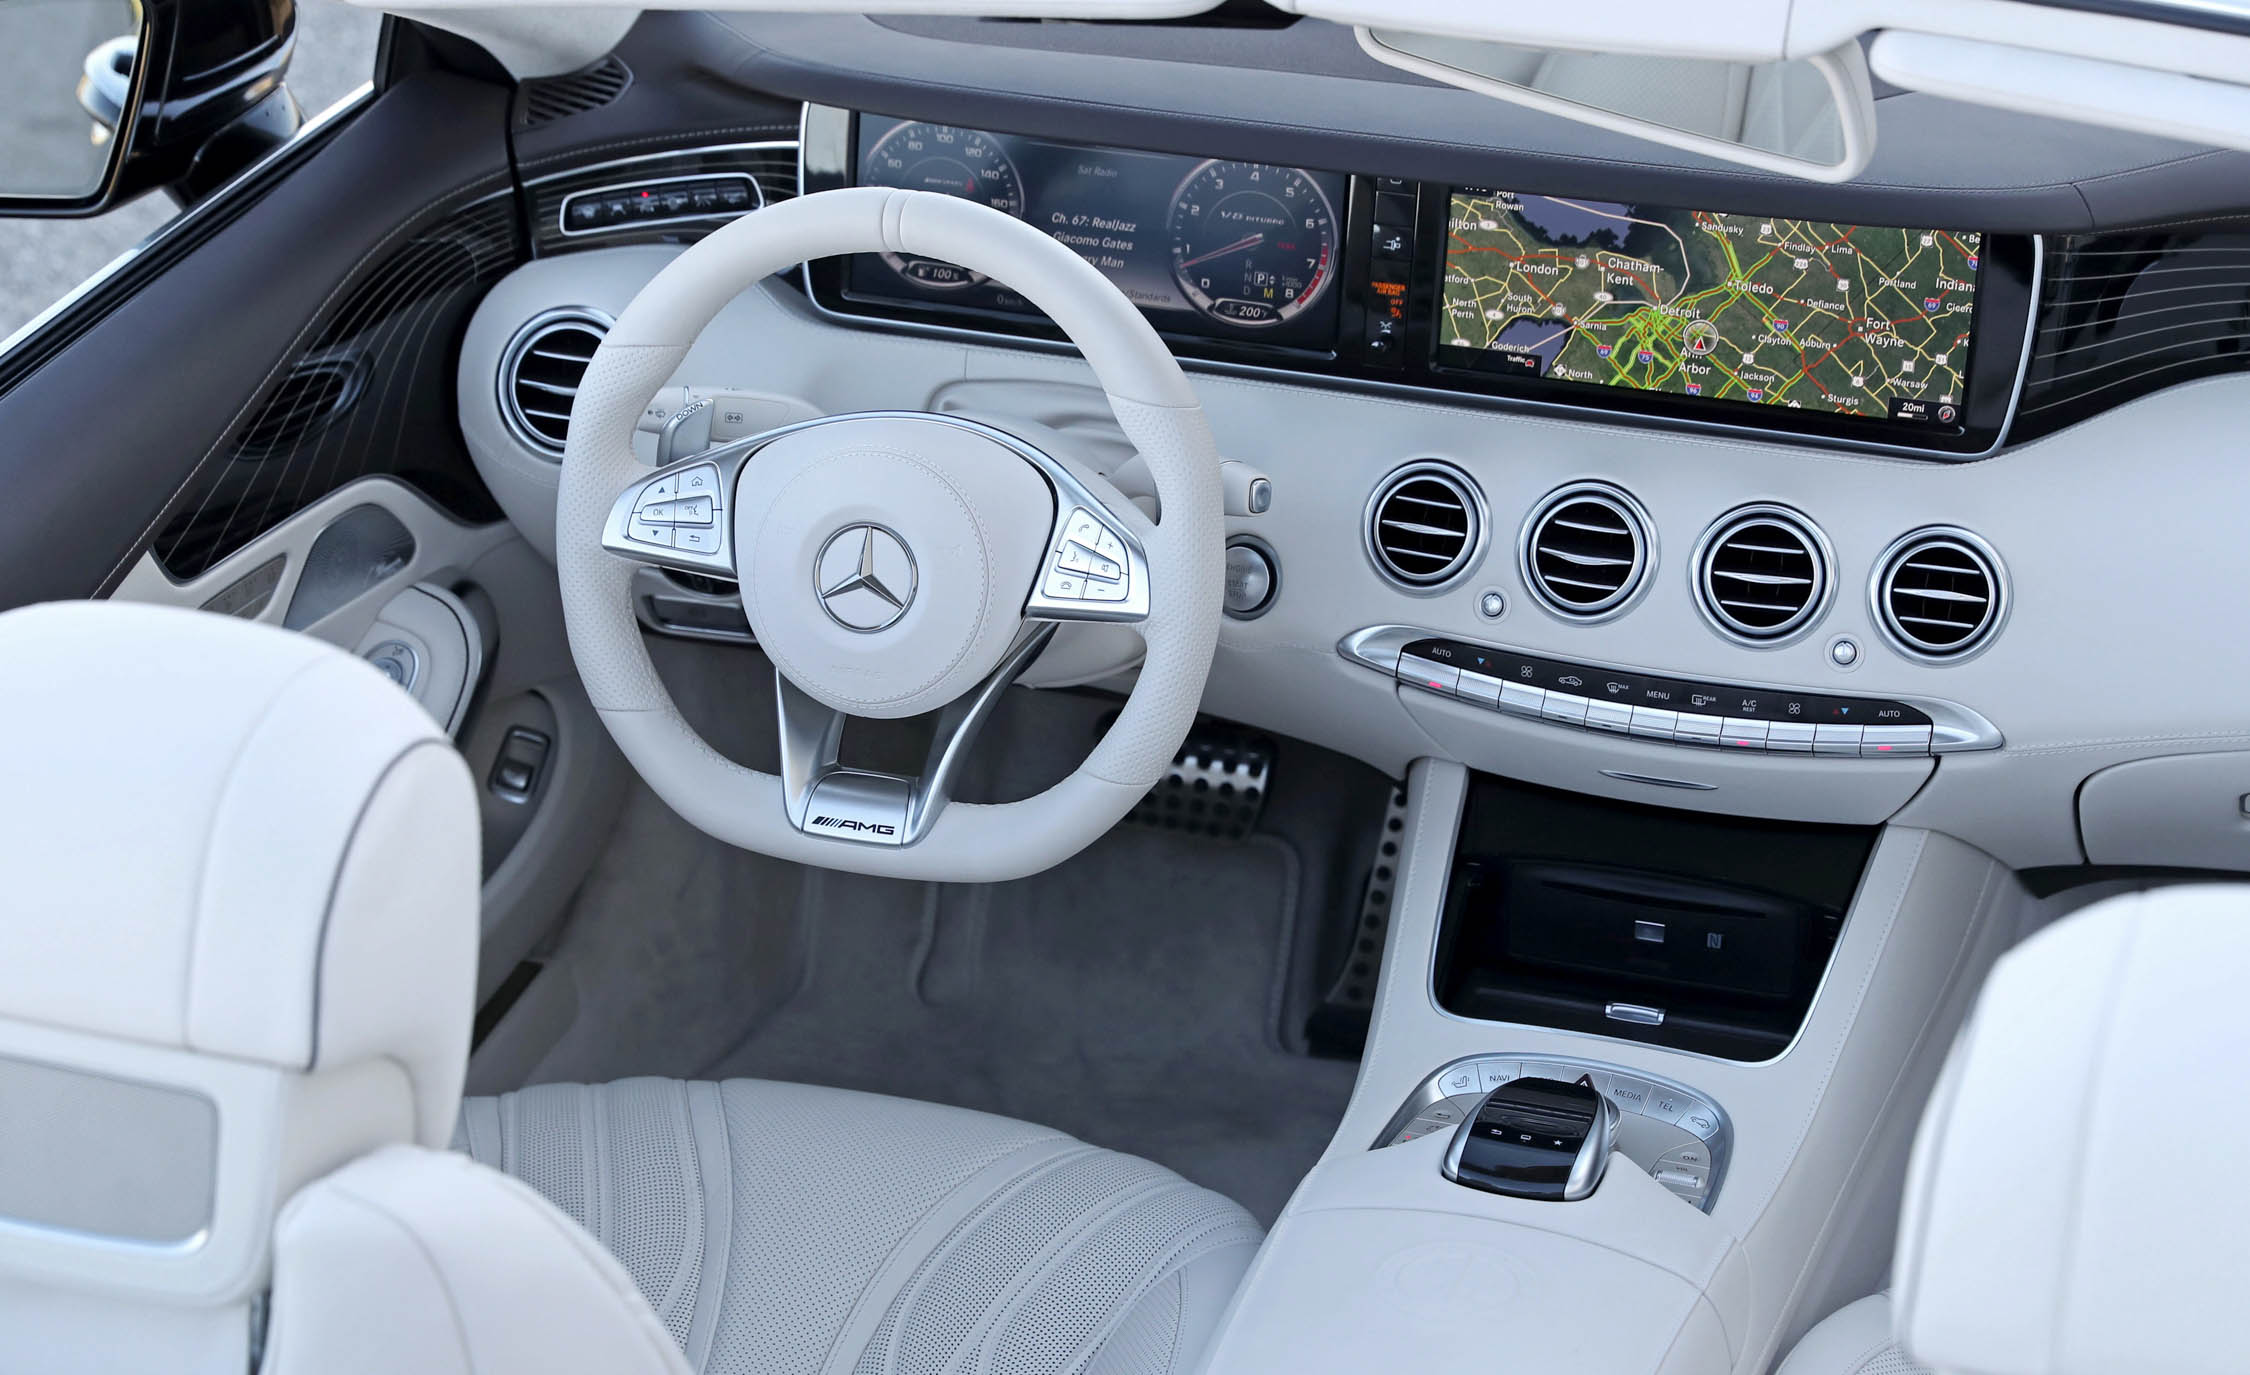 2017 Mercedes Amg S63 Cabriolet Interior View Cockpit And Dash (Photo 22 of 38)